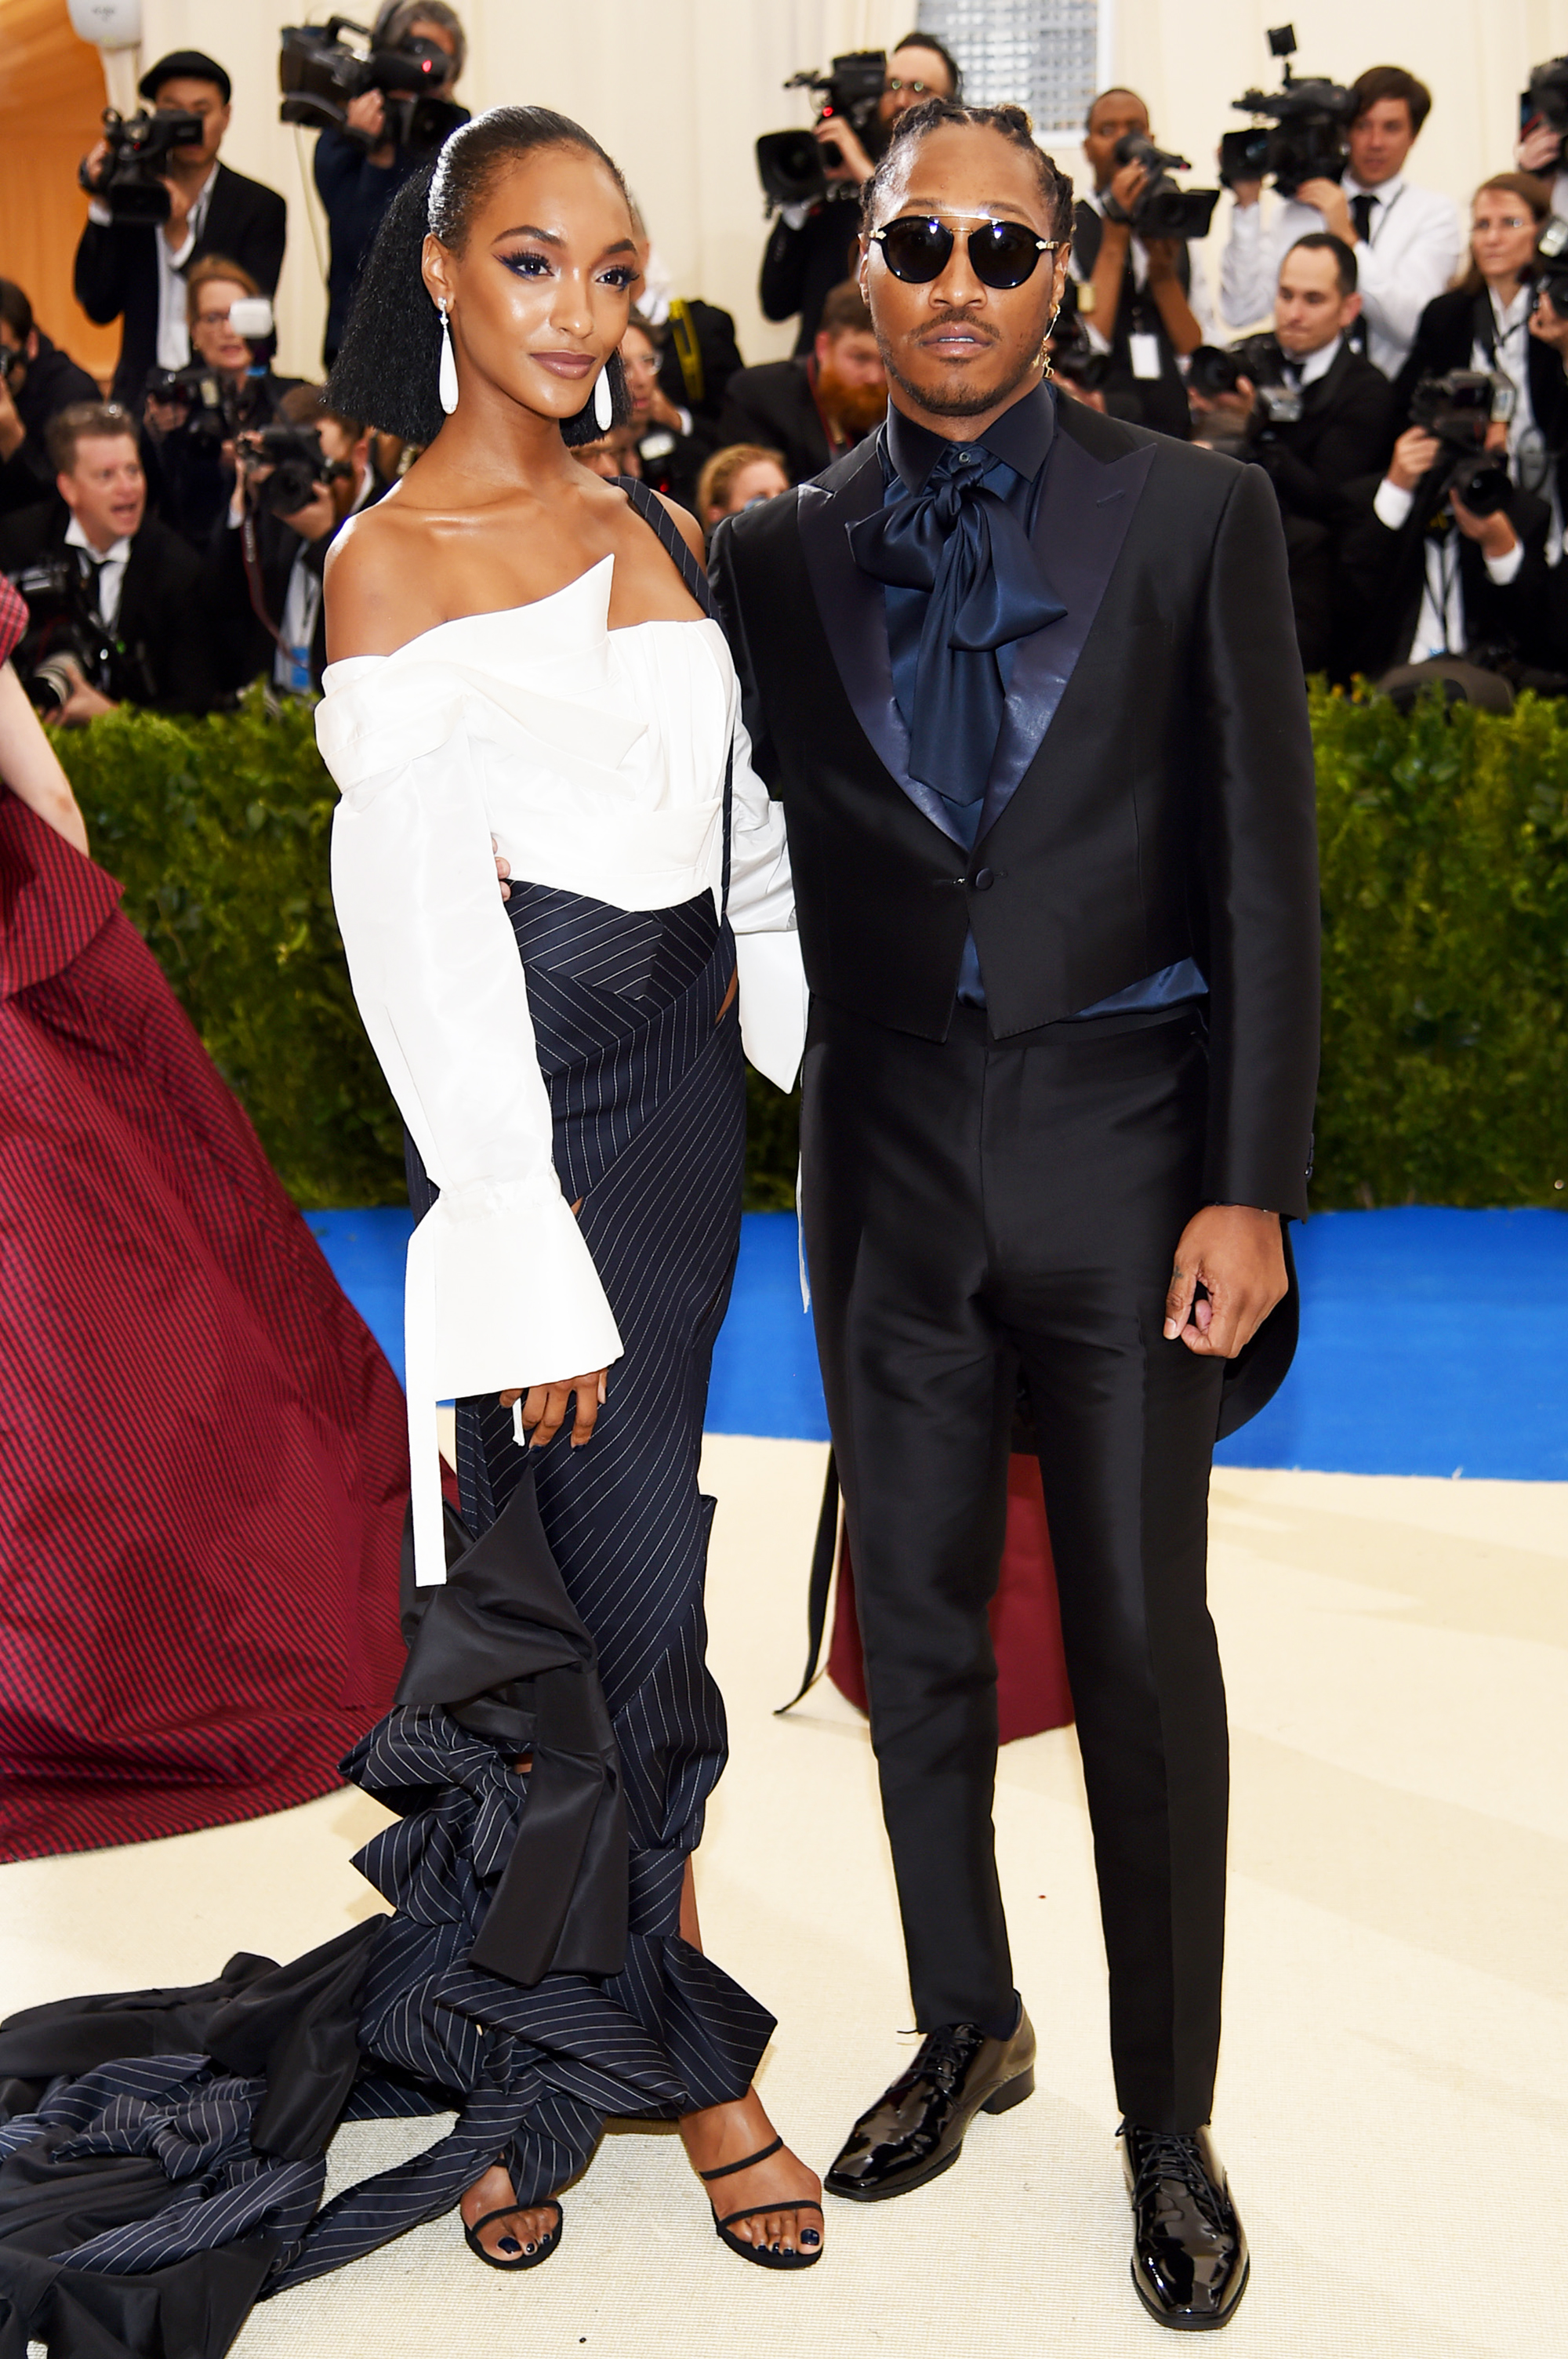 Jourdan Dunn and Future attend The Metropolitan Museum of Art's Costume Institute benefit gala celebrating the opening of the Rei Kawakubo/Comme des Garçons: Art of the In-Between exhibition in New York City, on May 1, 2017.